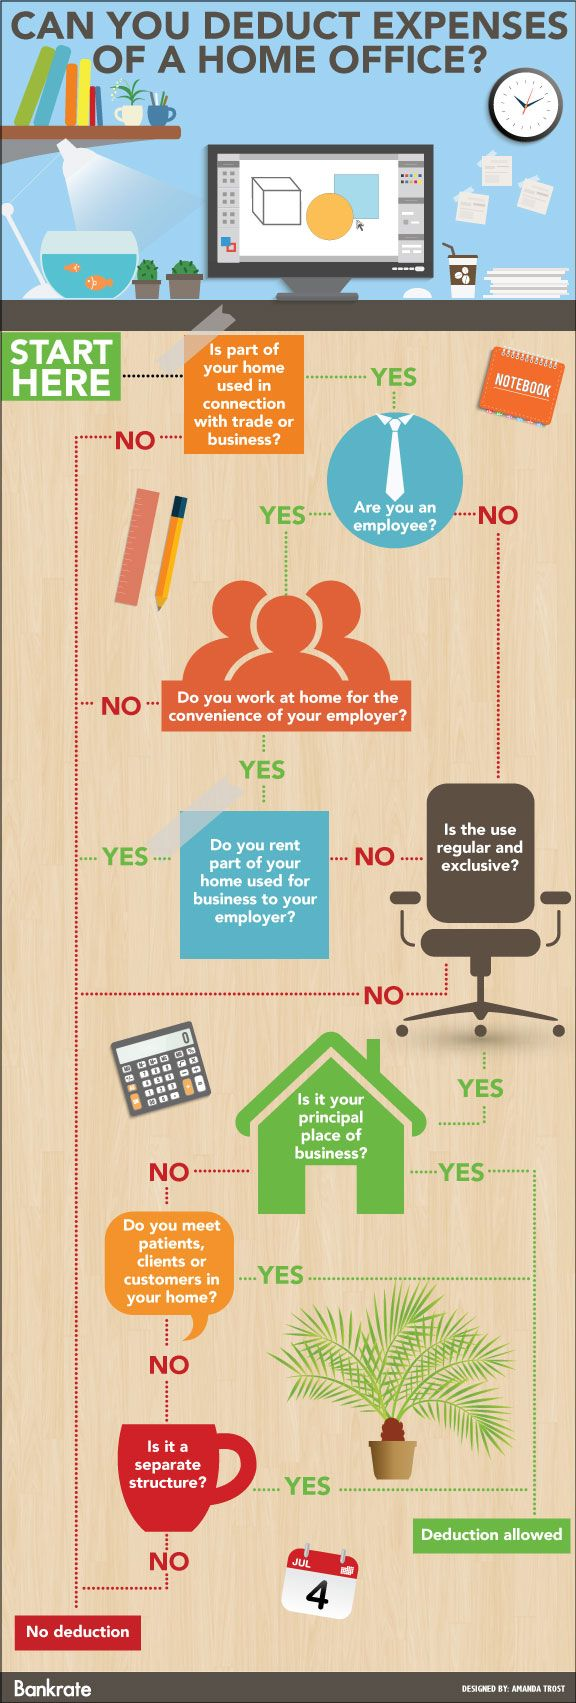 Can you #deduct #homeoffice expenses? Follow this flowchart to see. #taxes